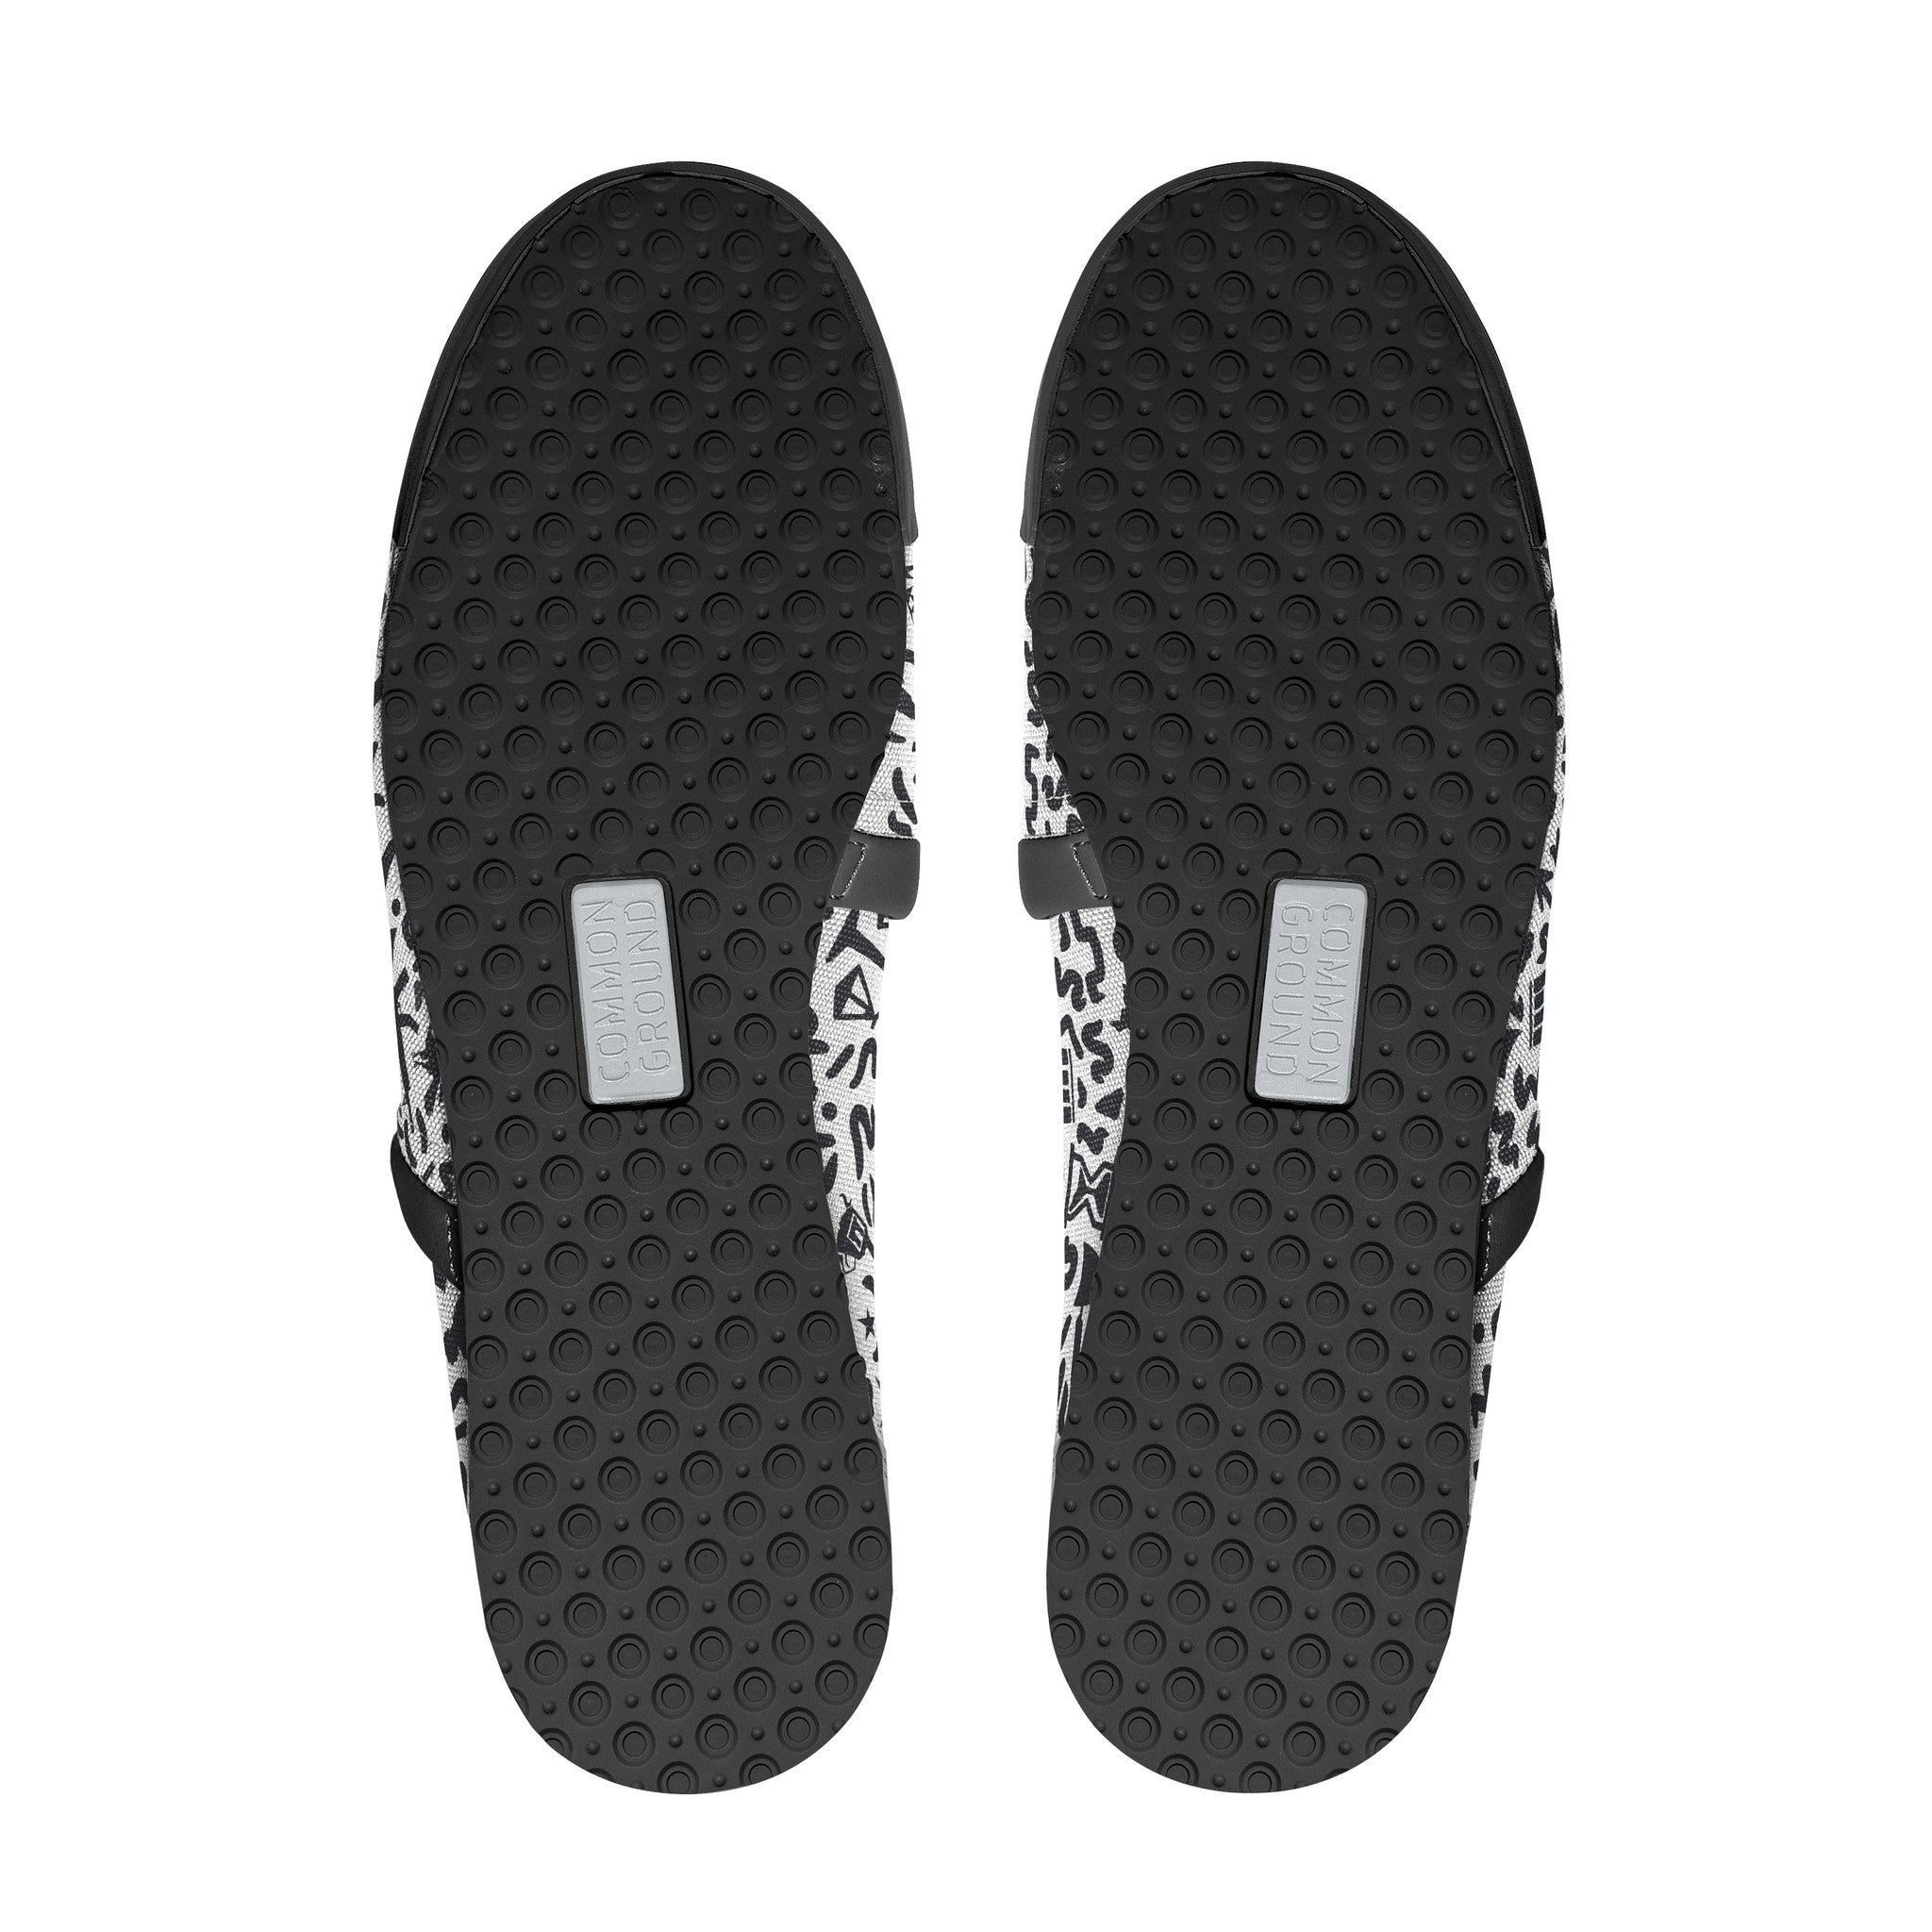 Jet_Black - Common Ground Footwear Shoes Bottom View